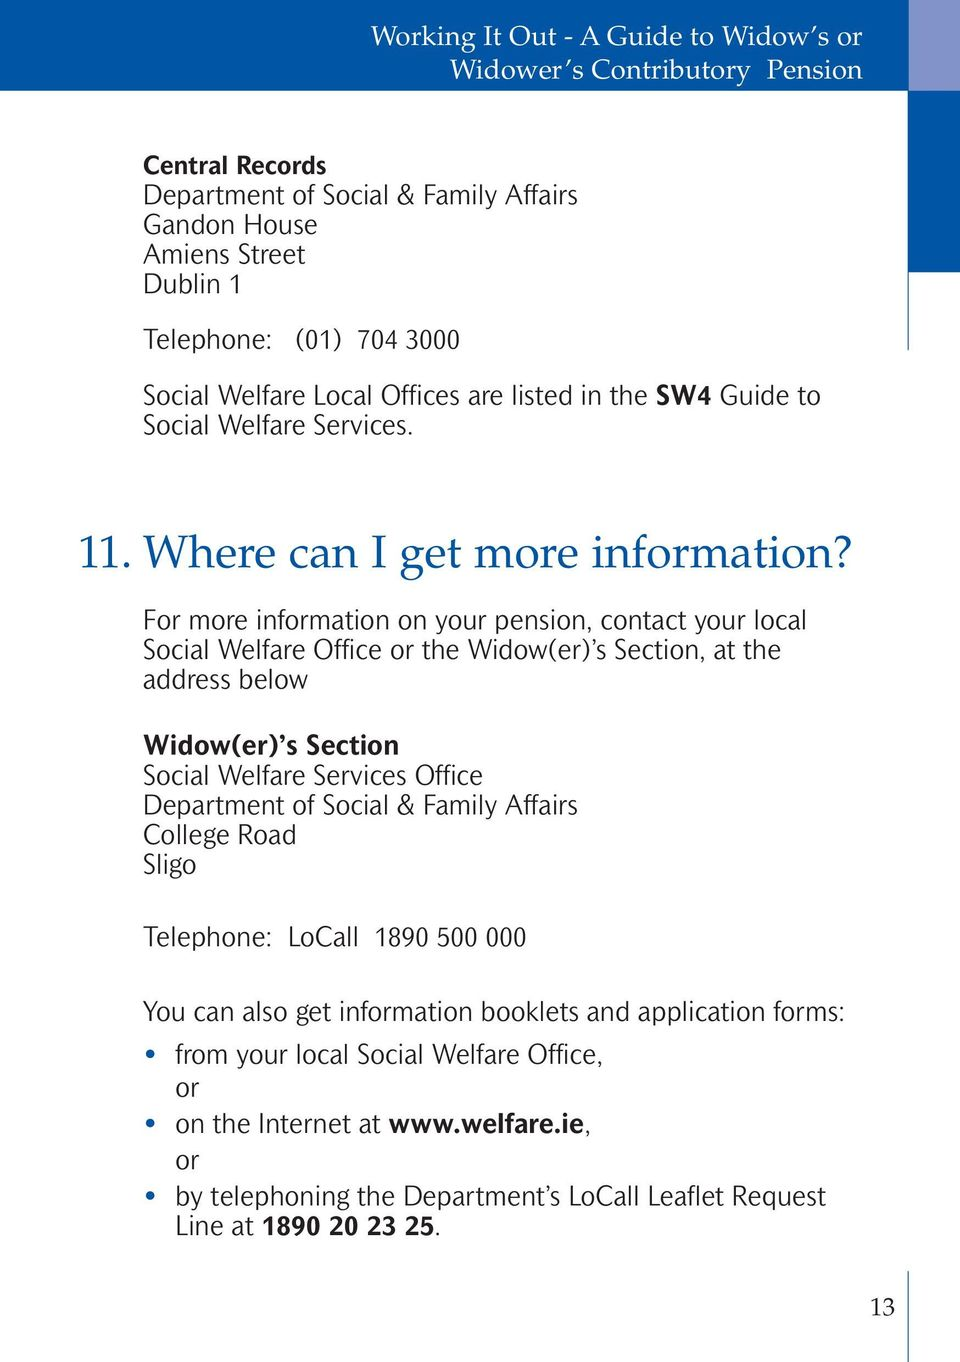 For more information on your pension, contact your local Social Welfare Office or the Widow(er) s Section, at the address below Widow(er) s Section Social Welfare Services Office Department of